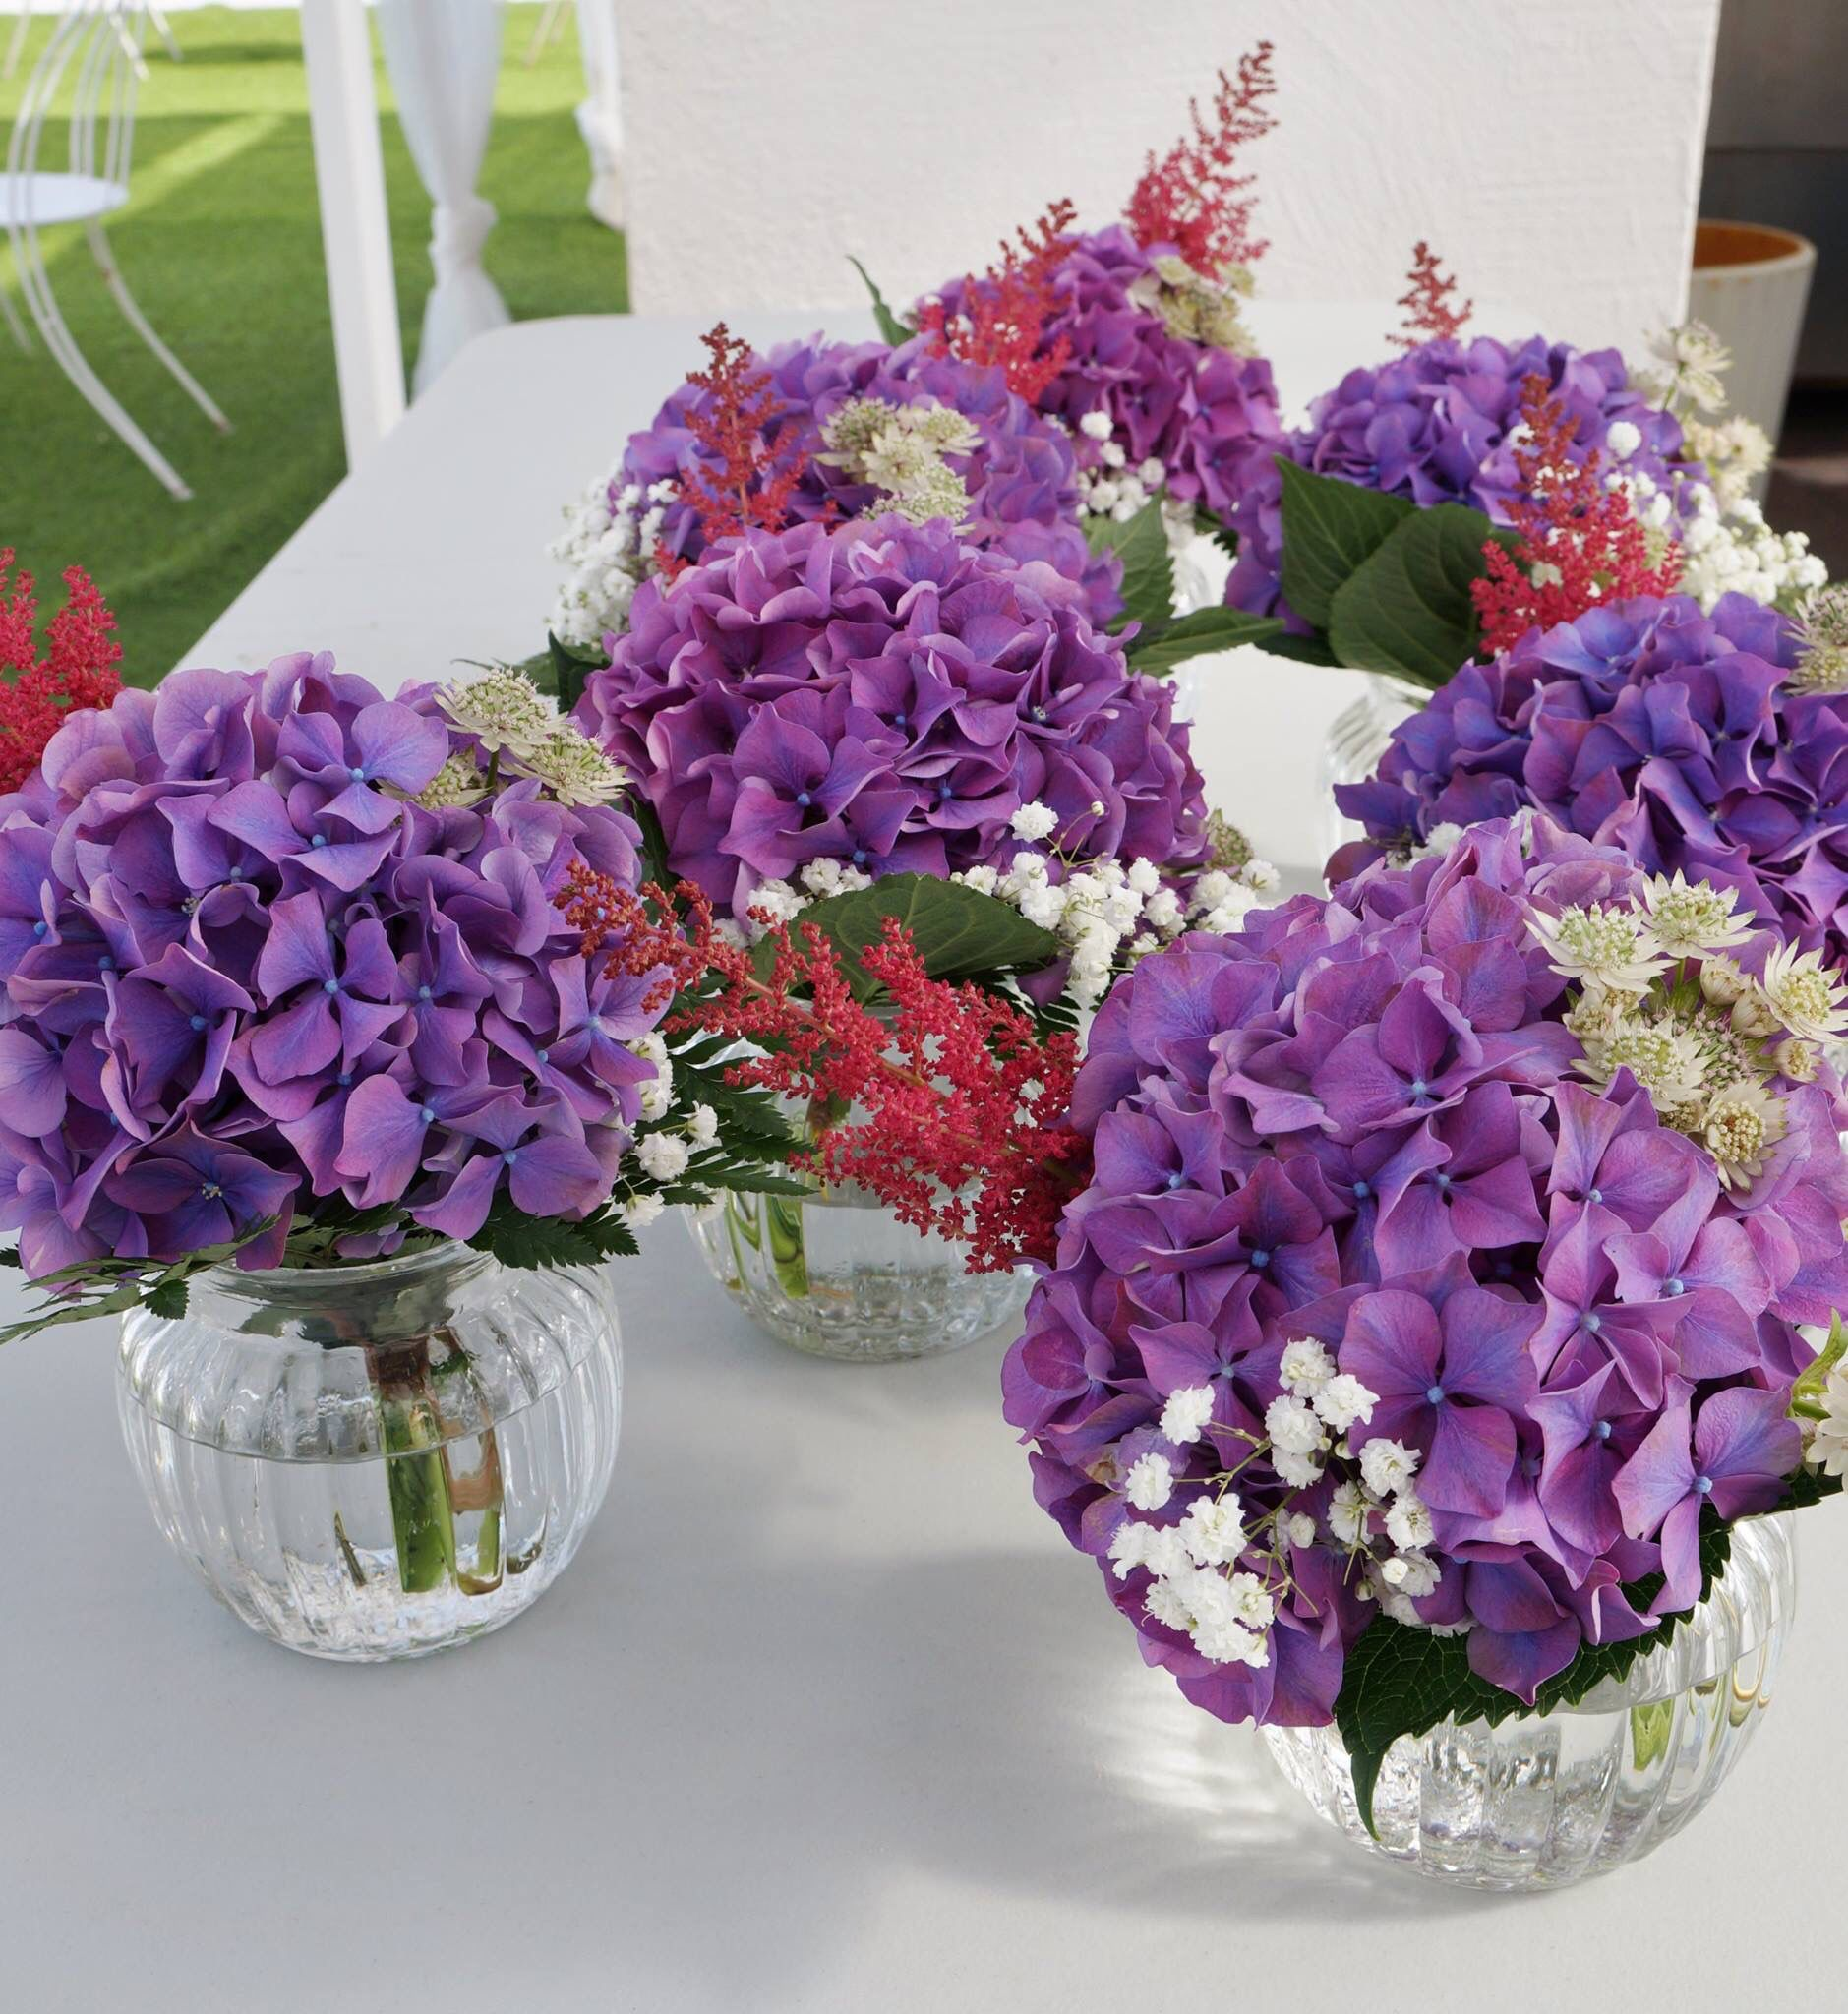 Flores para las mesas del aperitivo / wedding details with purple hydrangea #sitgeswedding #wedding #floral #floweshop #flowershopsitges #flowerarrangement #sitges #bodasitges #arreglosflorales #flores #flors #decor #casaments #bodas #flowers #weddingdetails #purple #weddingdecor #sitgesbodas